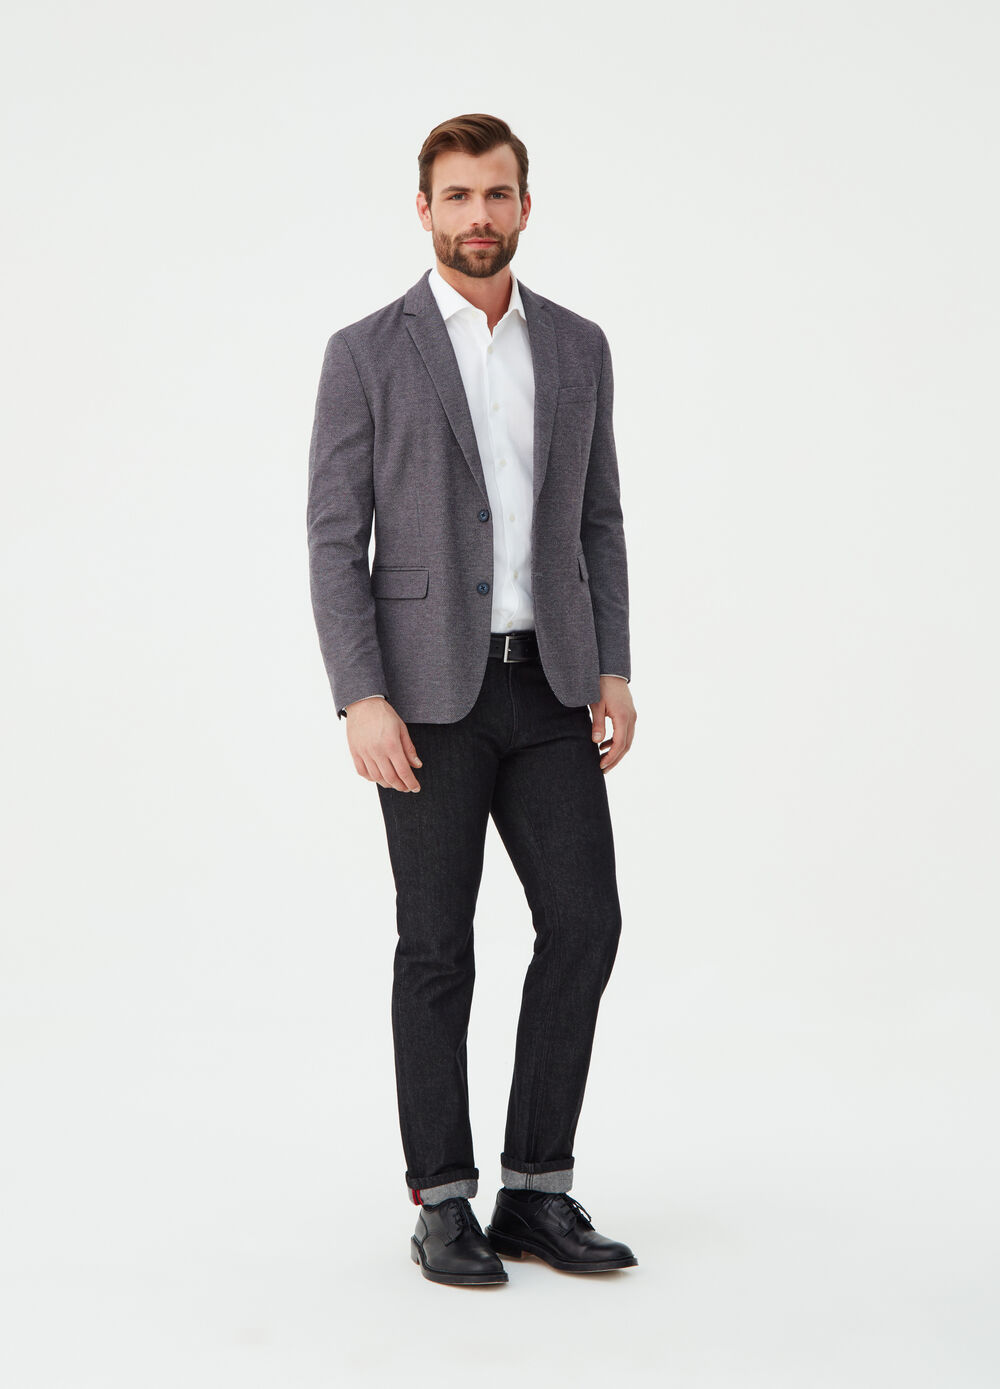 Two-button blazer with speckled weave